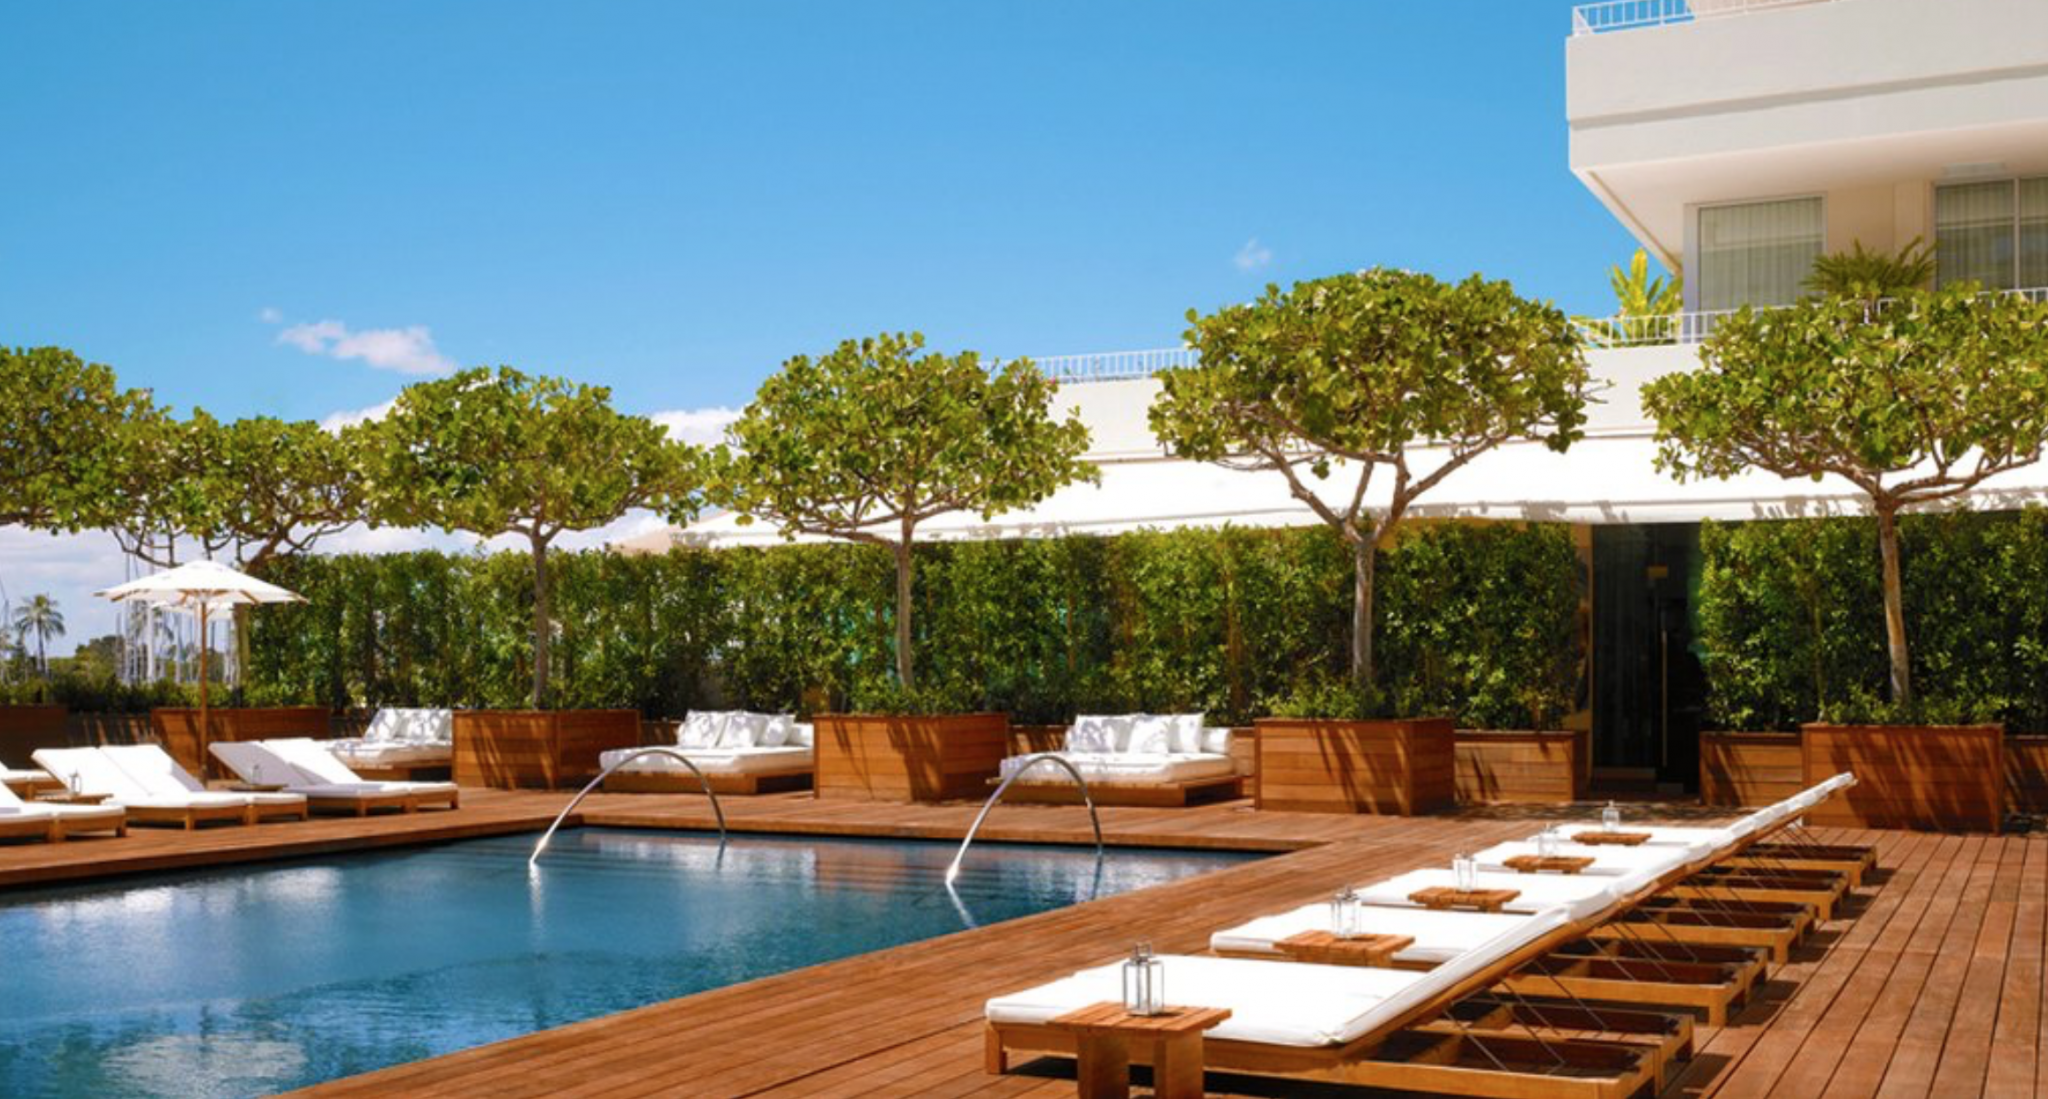 The modern hotel honolulu explored and reviewed best of for Design hotel hawaii